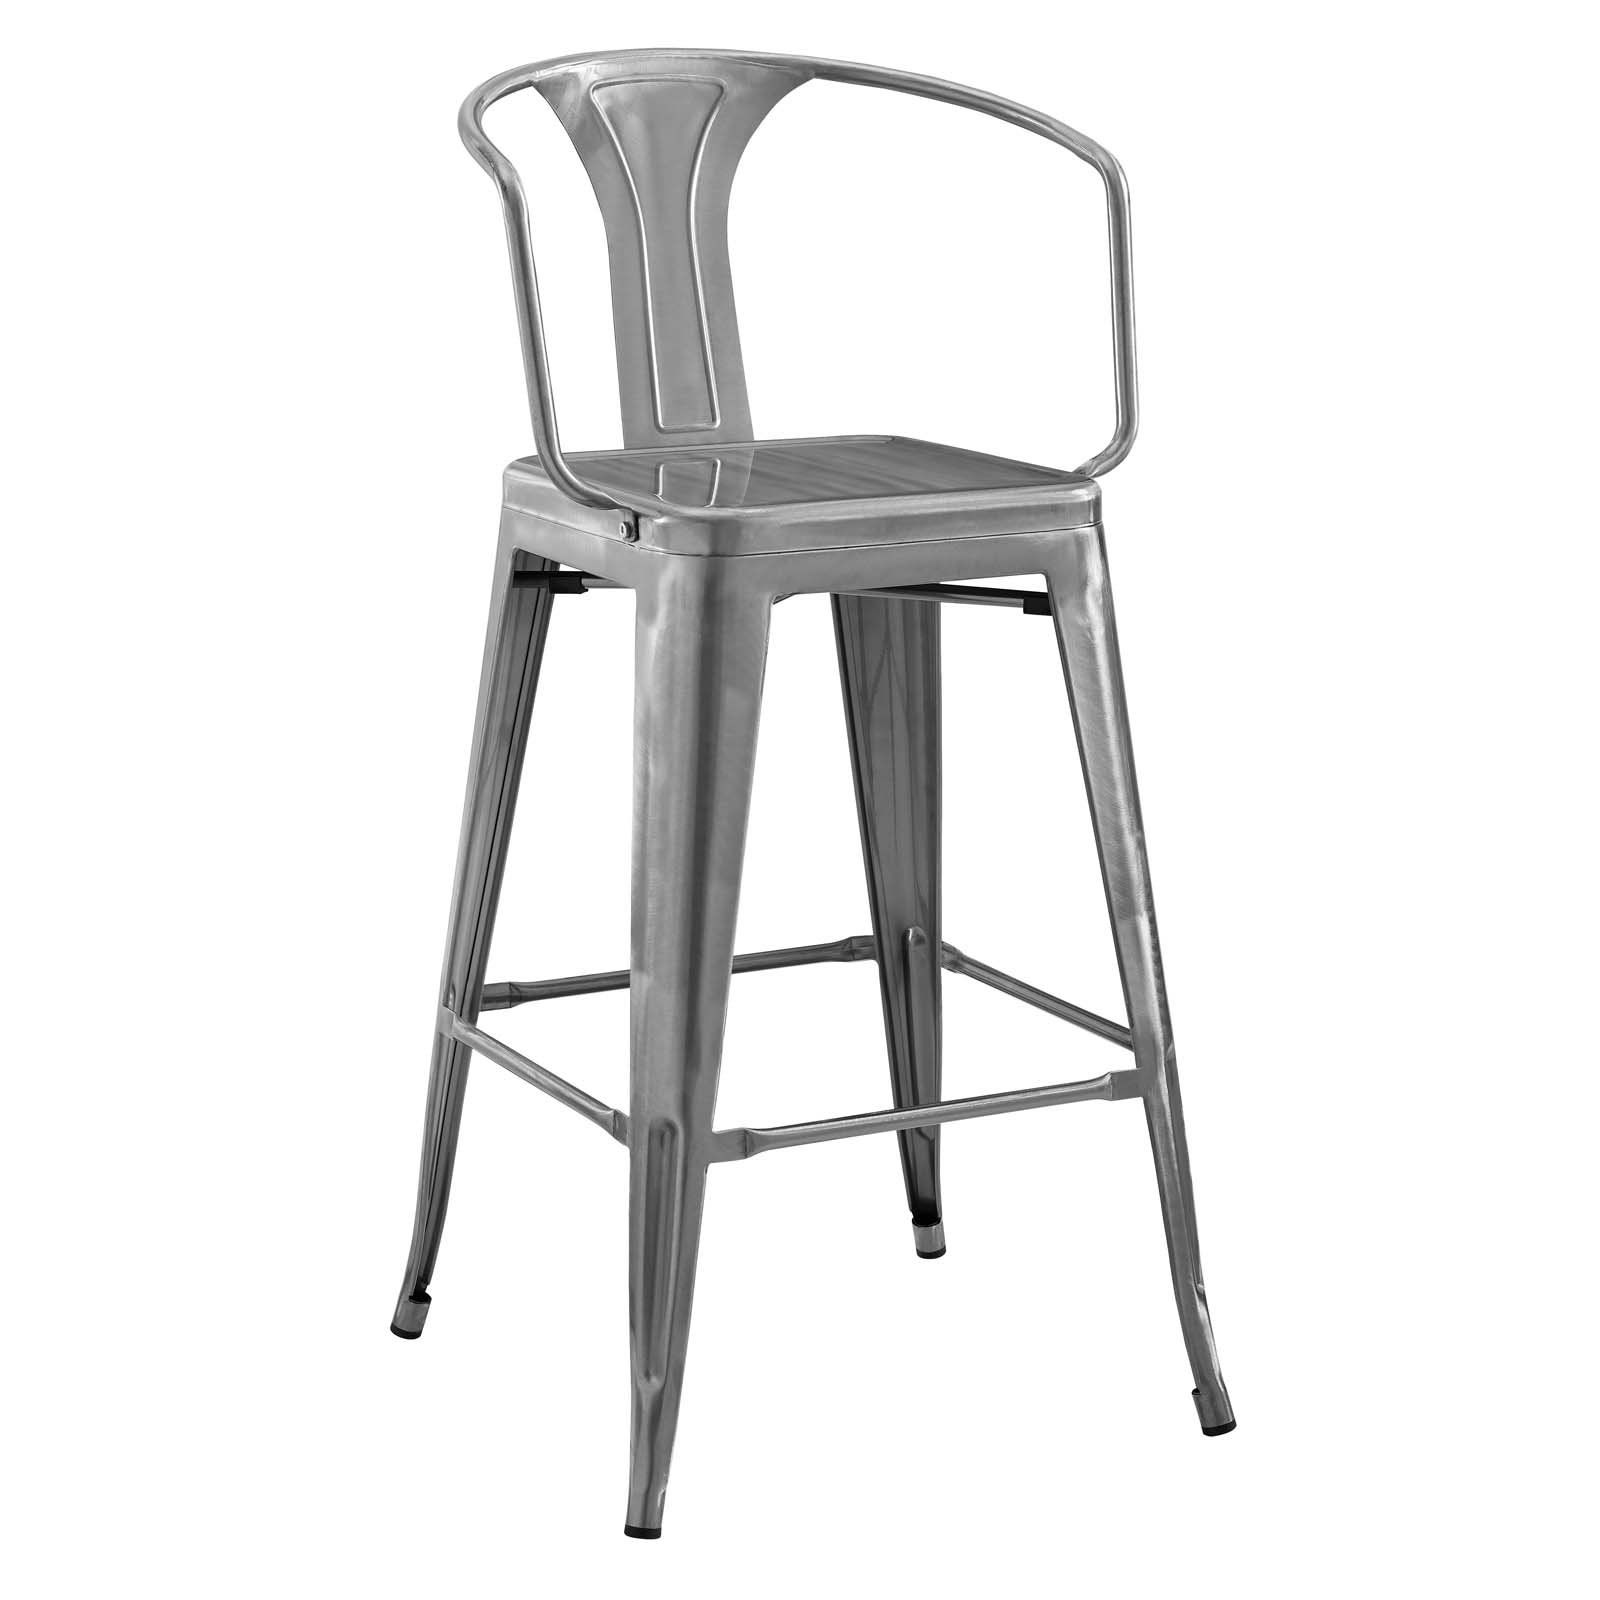 Modway Bar Chairs On Sale Eei 2817 Blk Promenade Cafe And Bistro Style Steel Bar Chair Only Only 117 00 Metal Bar Stools Bar Stools Grey Bar Stools